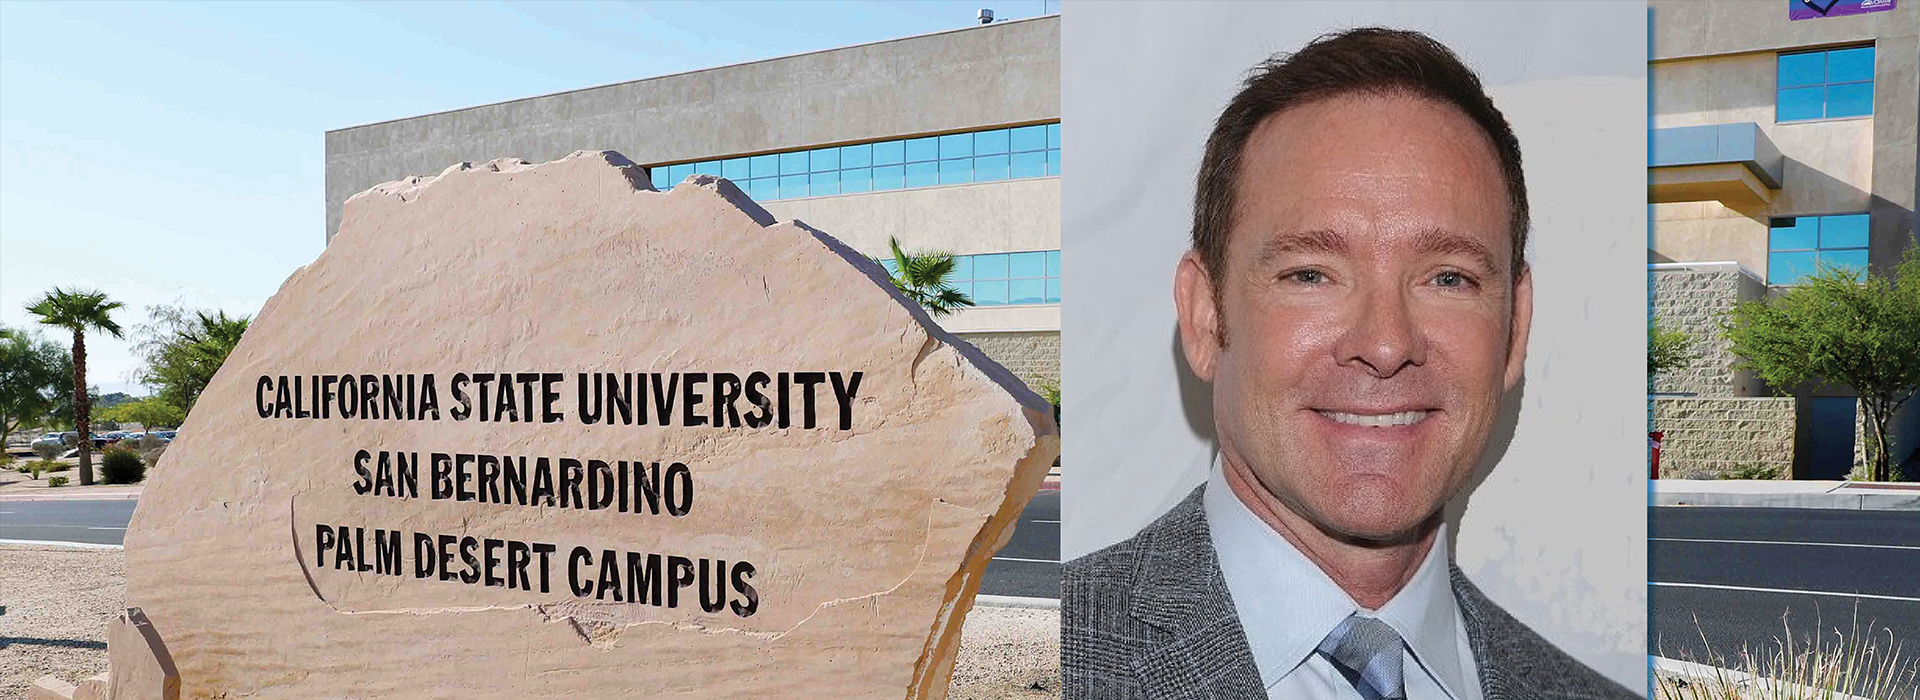 CSUSB Palm Desert Campus hires new director of development